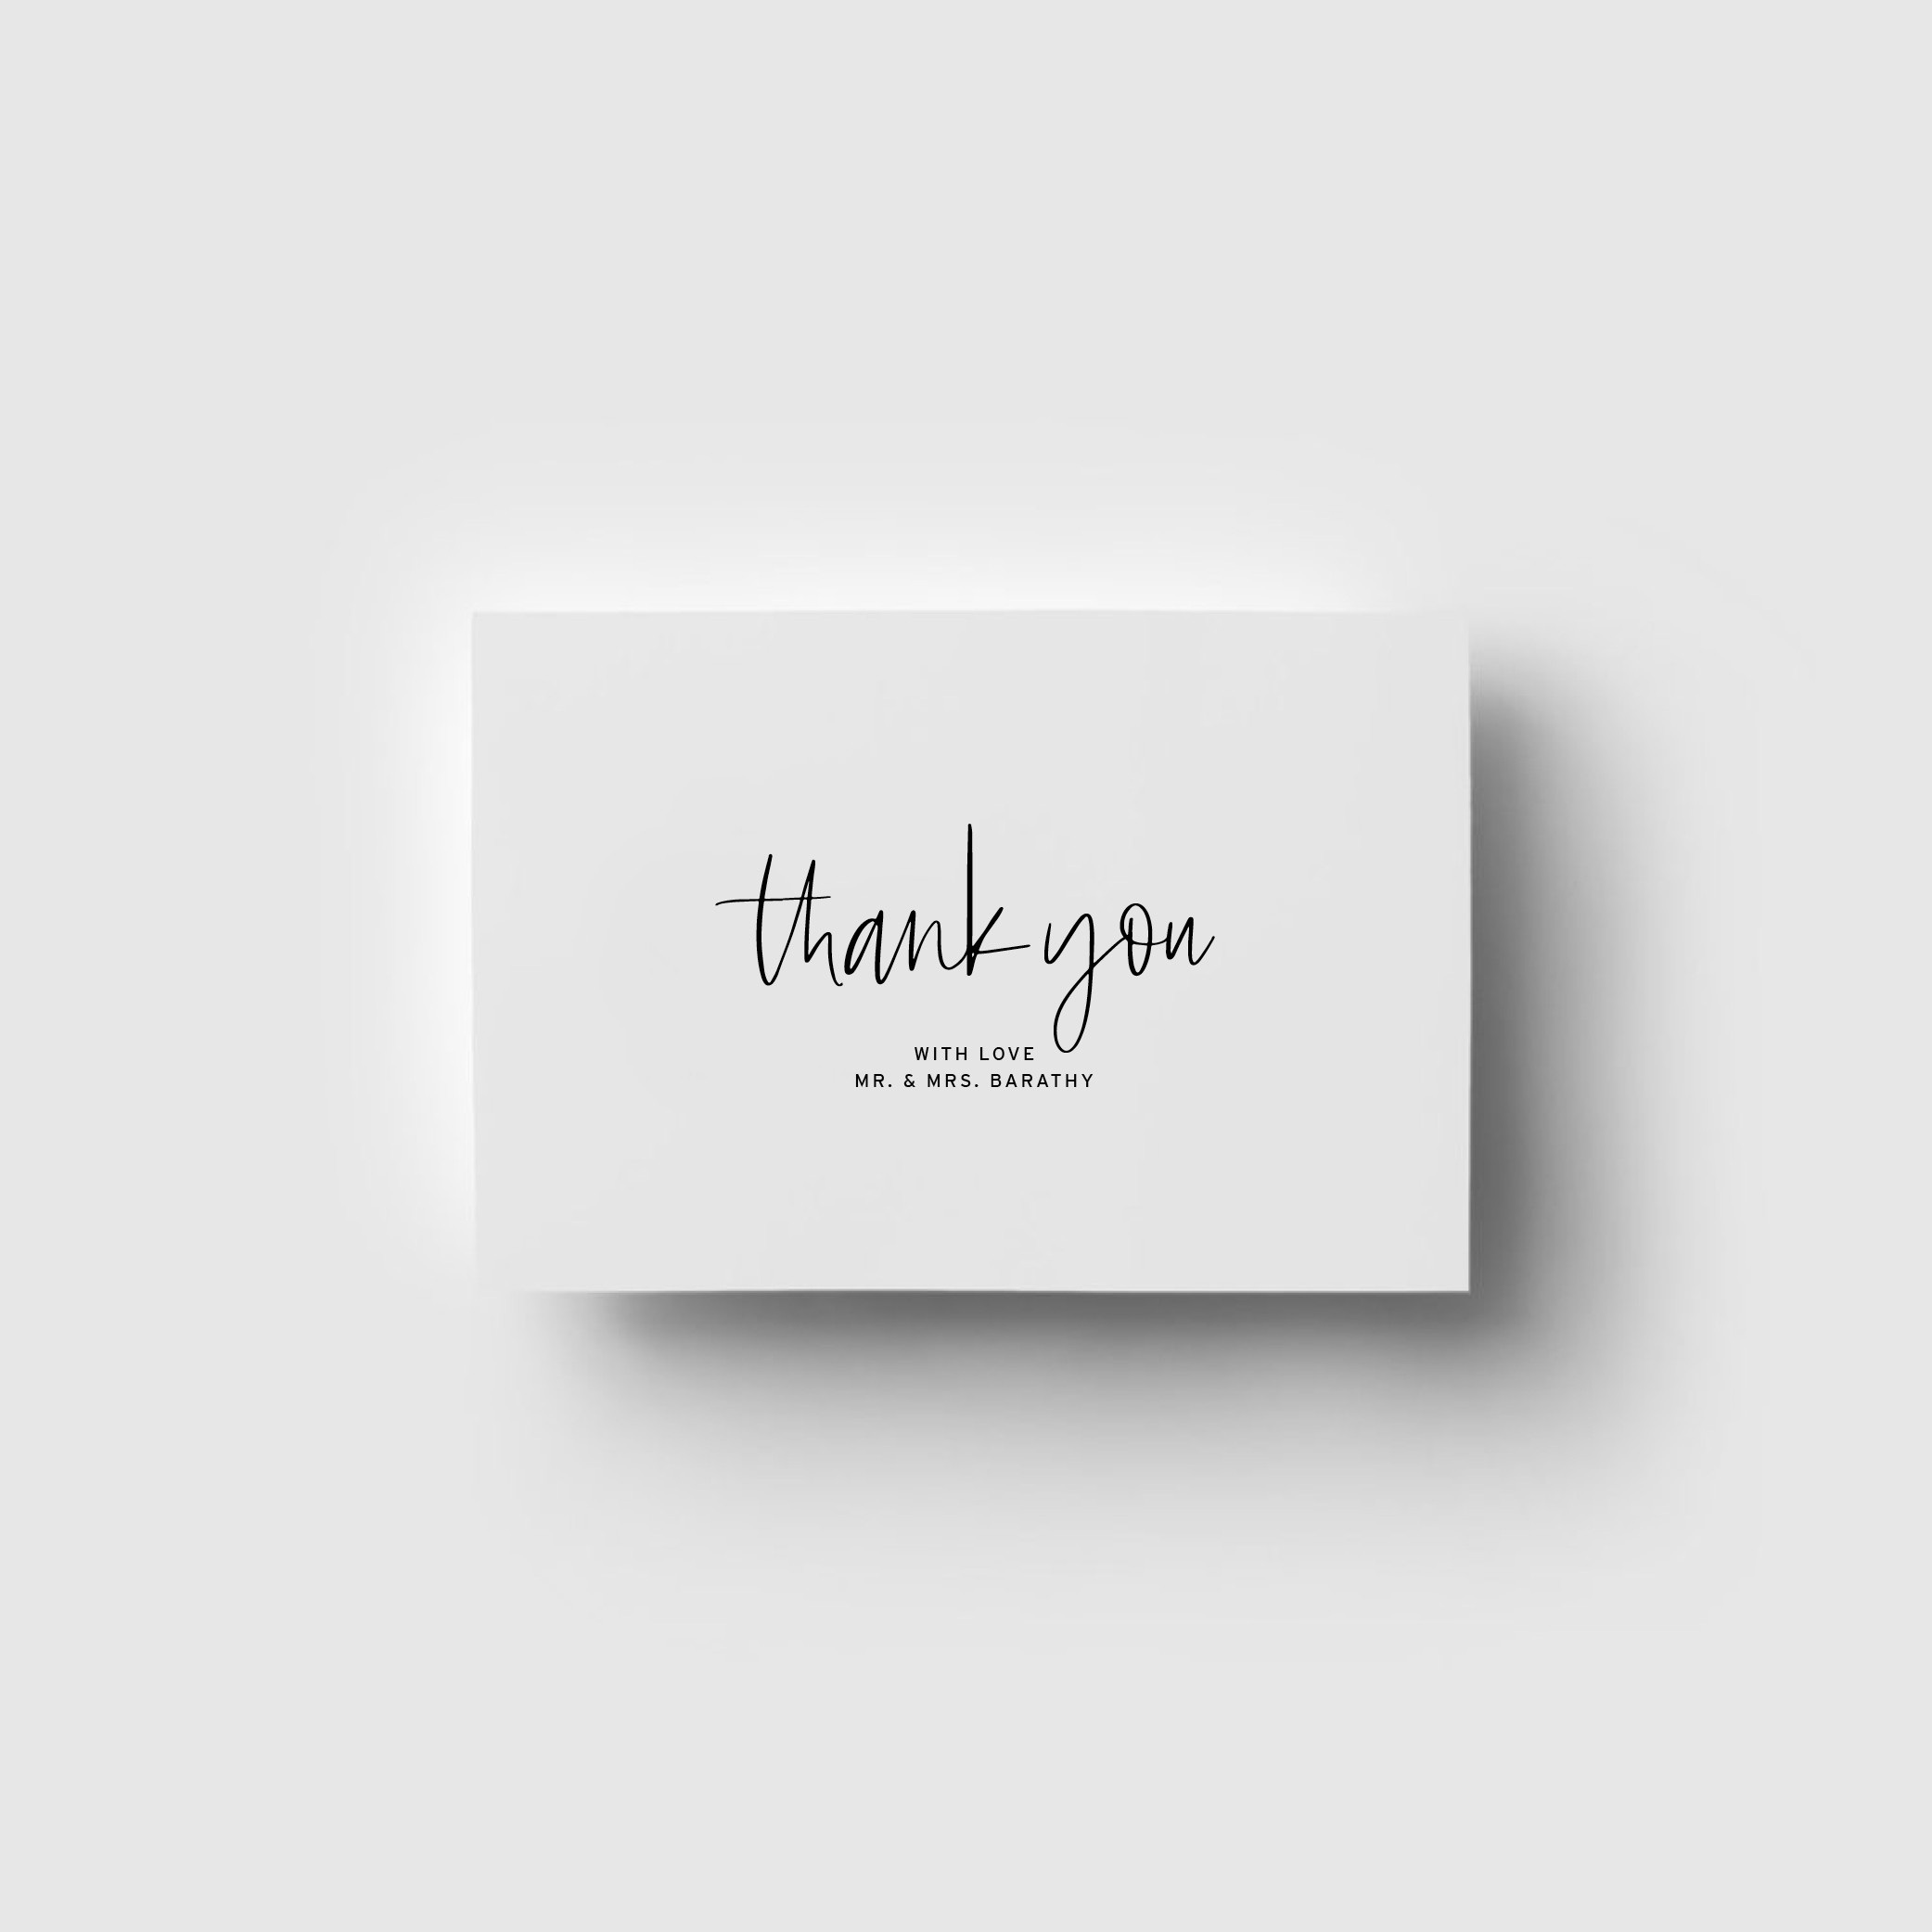 THANK YOU CARDS | Love Letters